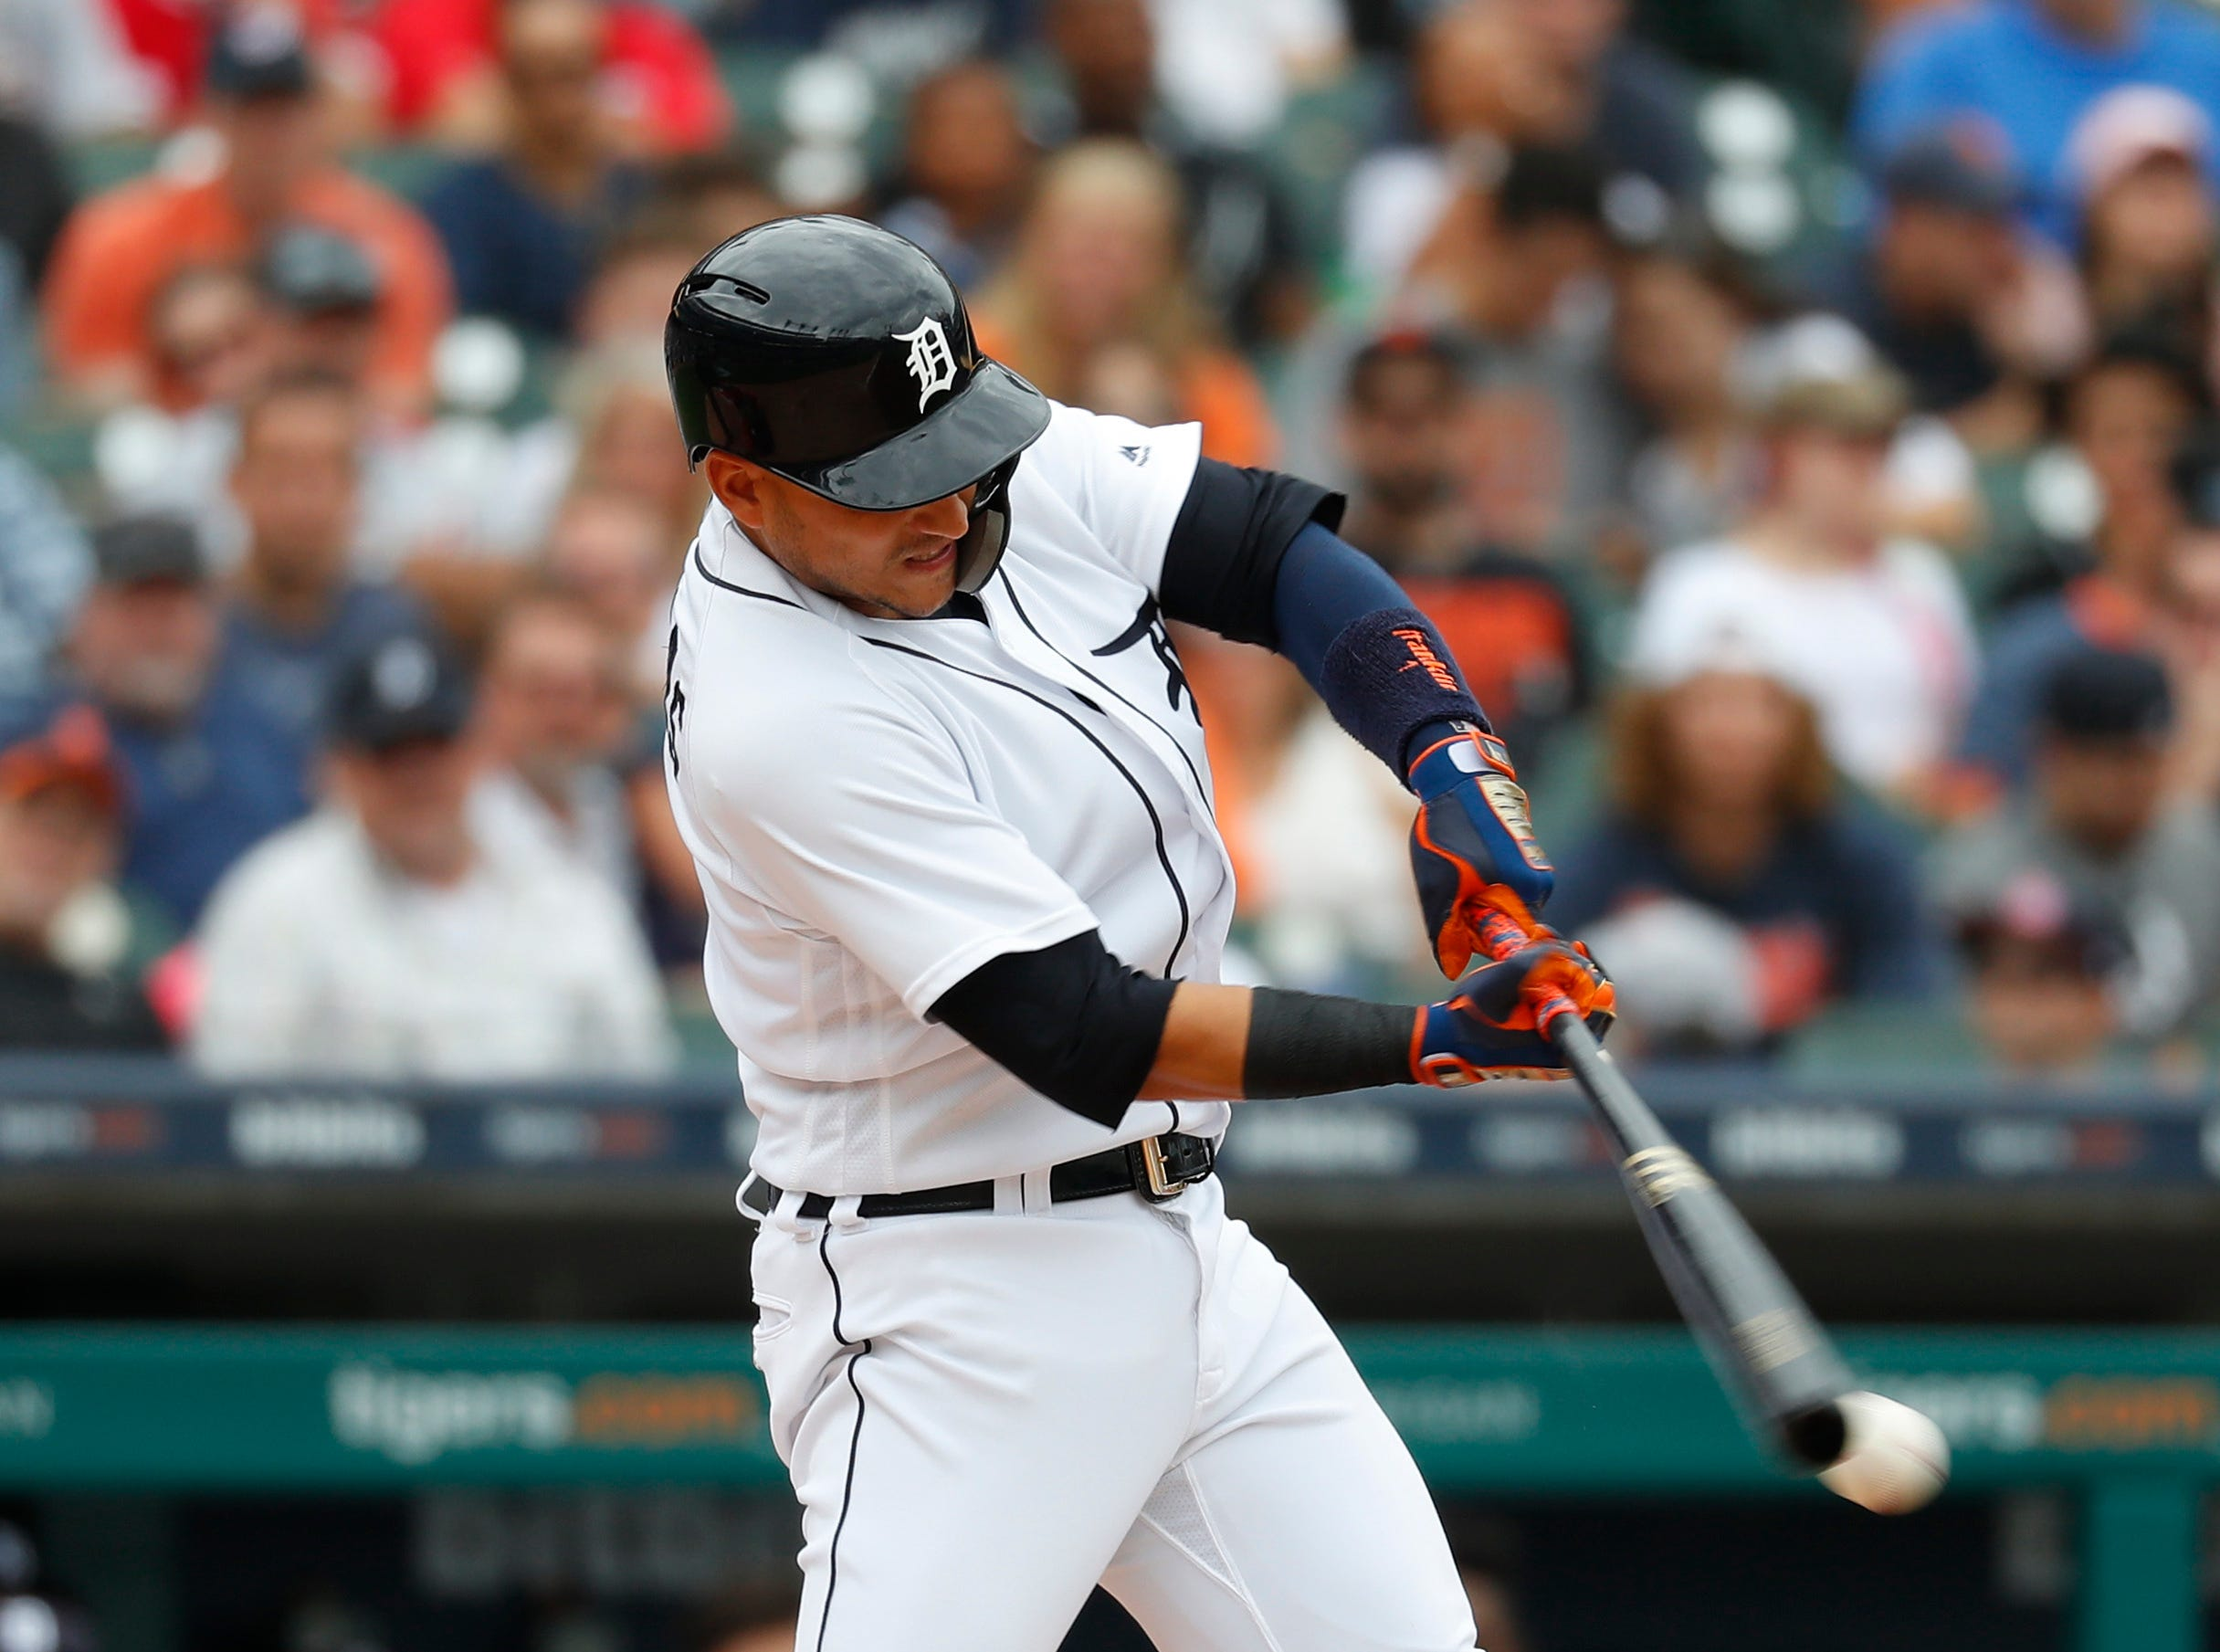 Jose Iglesias hits a two-run double in the second inning.